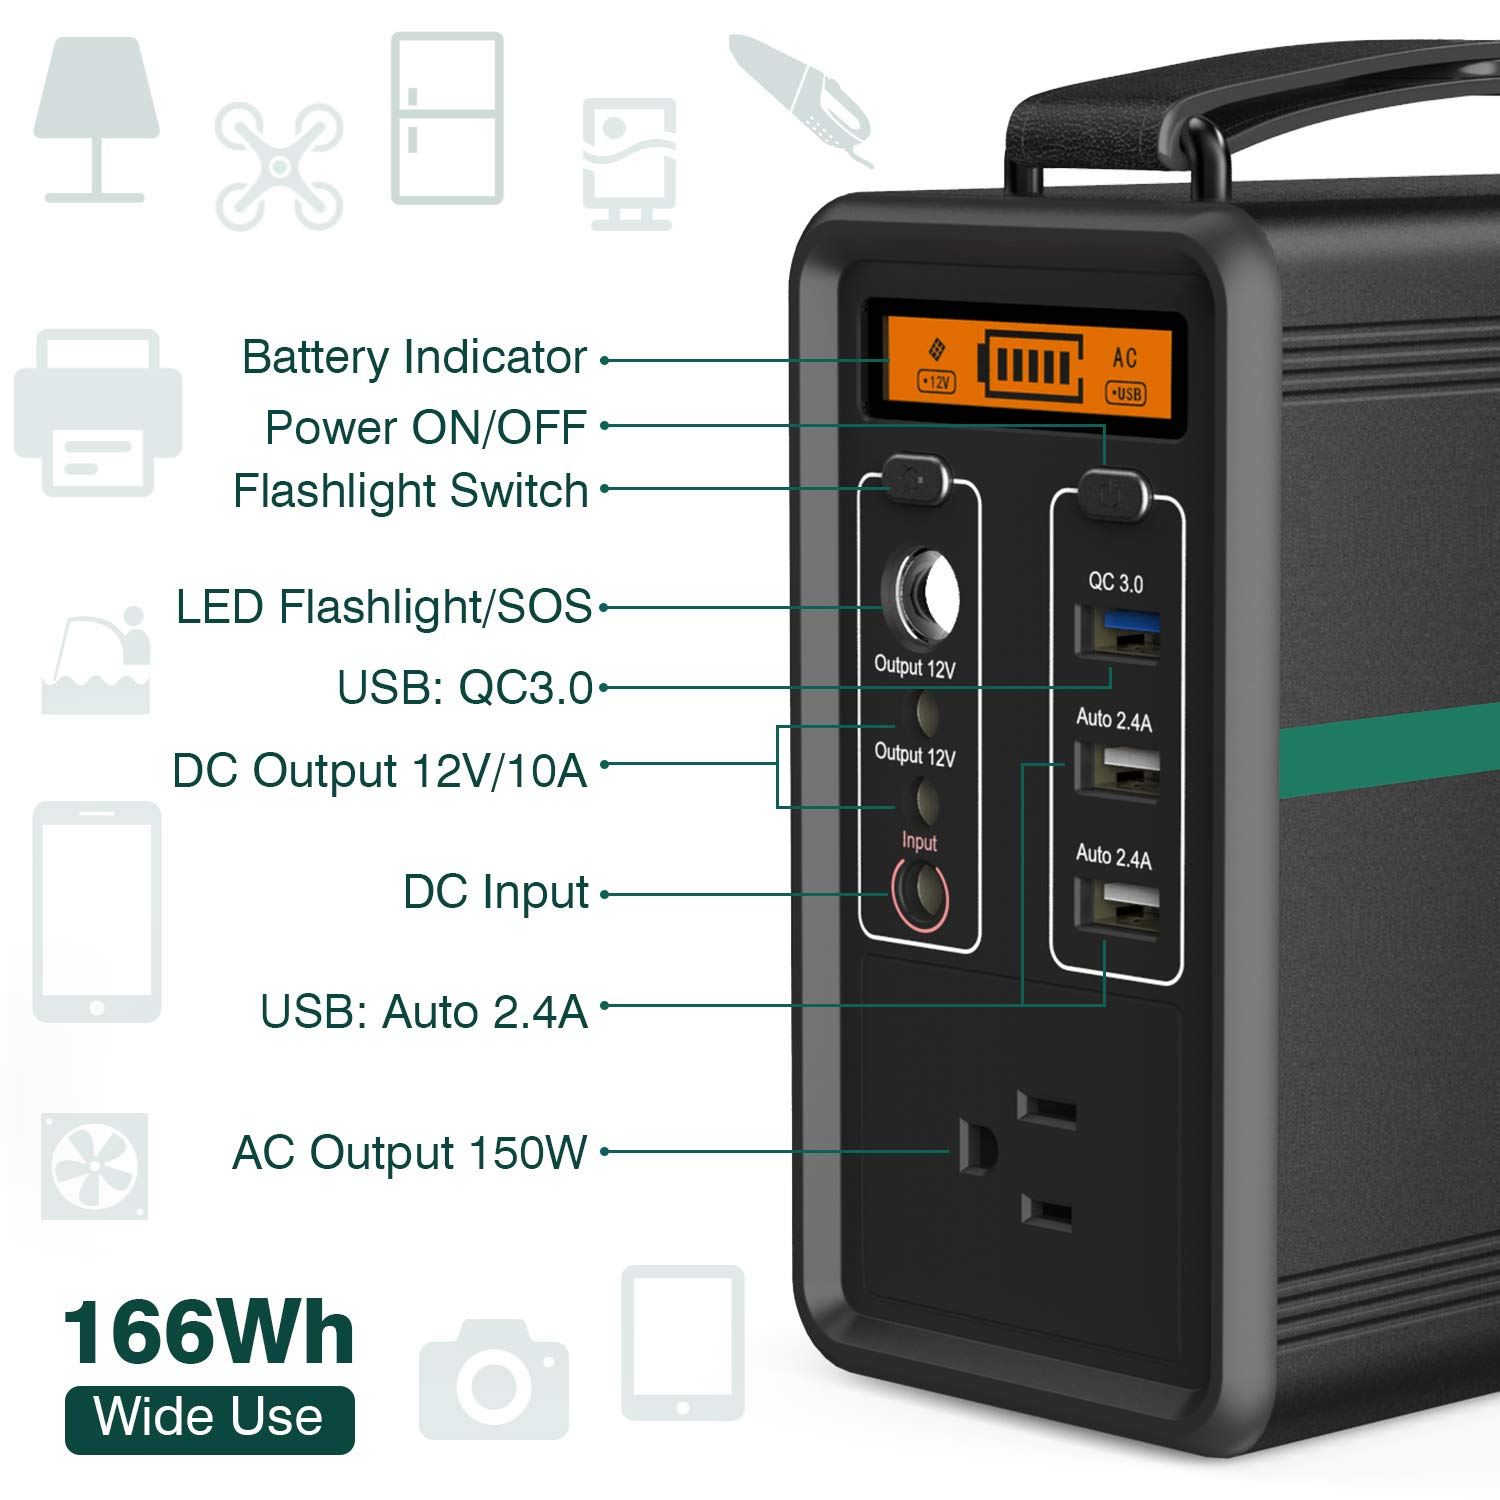 BEAUDENS 166Wh Portable Power Station, Lithium Iron Phosphate Battery, 2000 Cycles, 10 Years Battery Life, with Multiple Ports, Perfect for Tablet, Laptop, Appliances Use by BEAUDENS (Image #3)